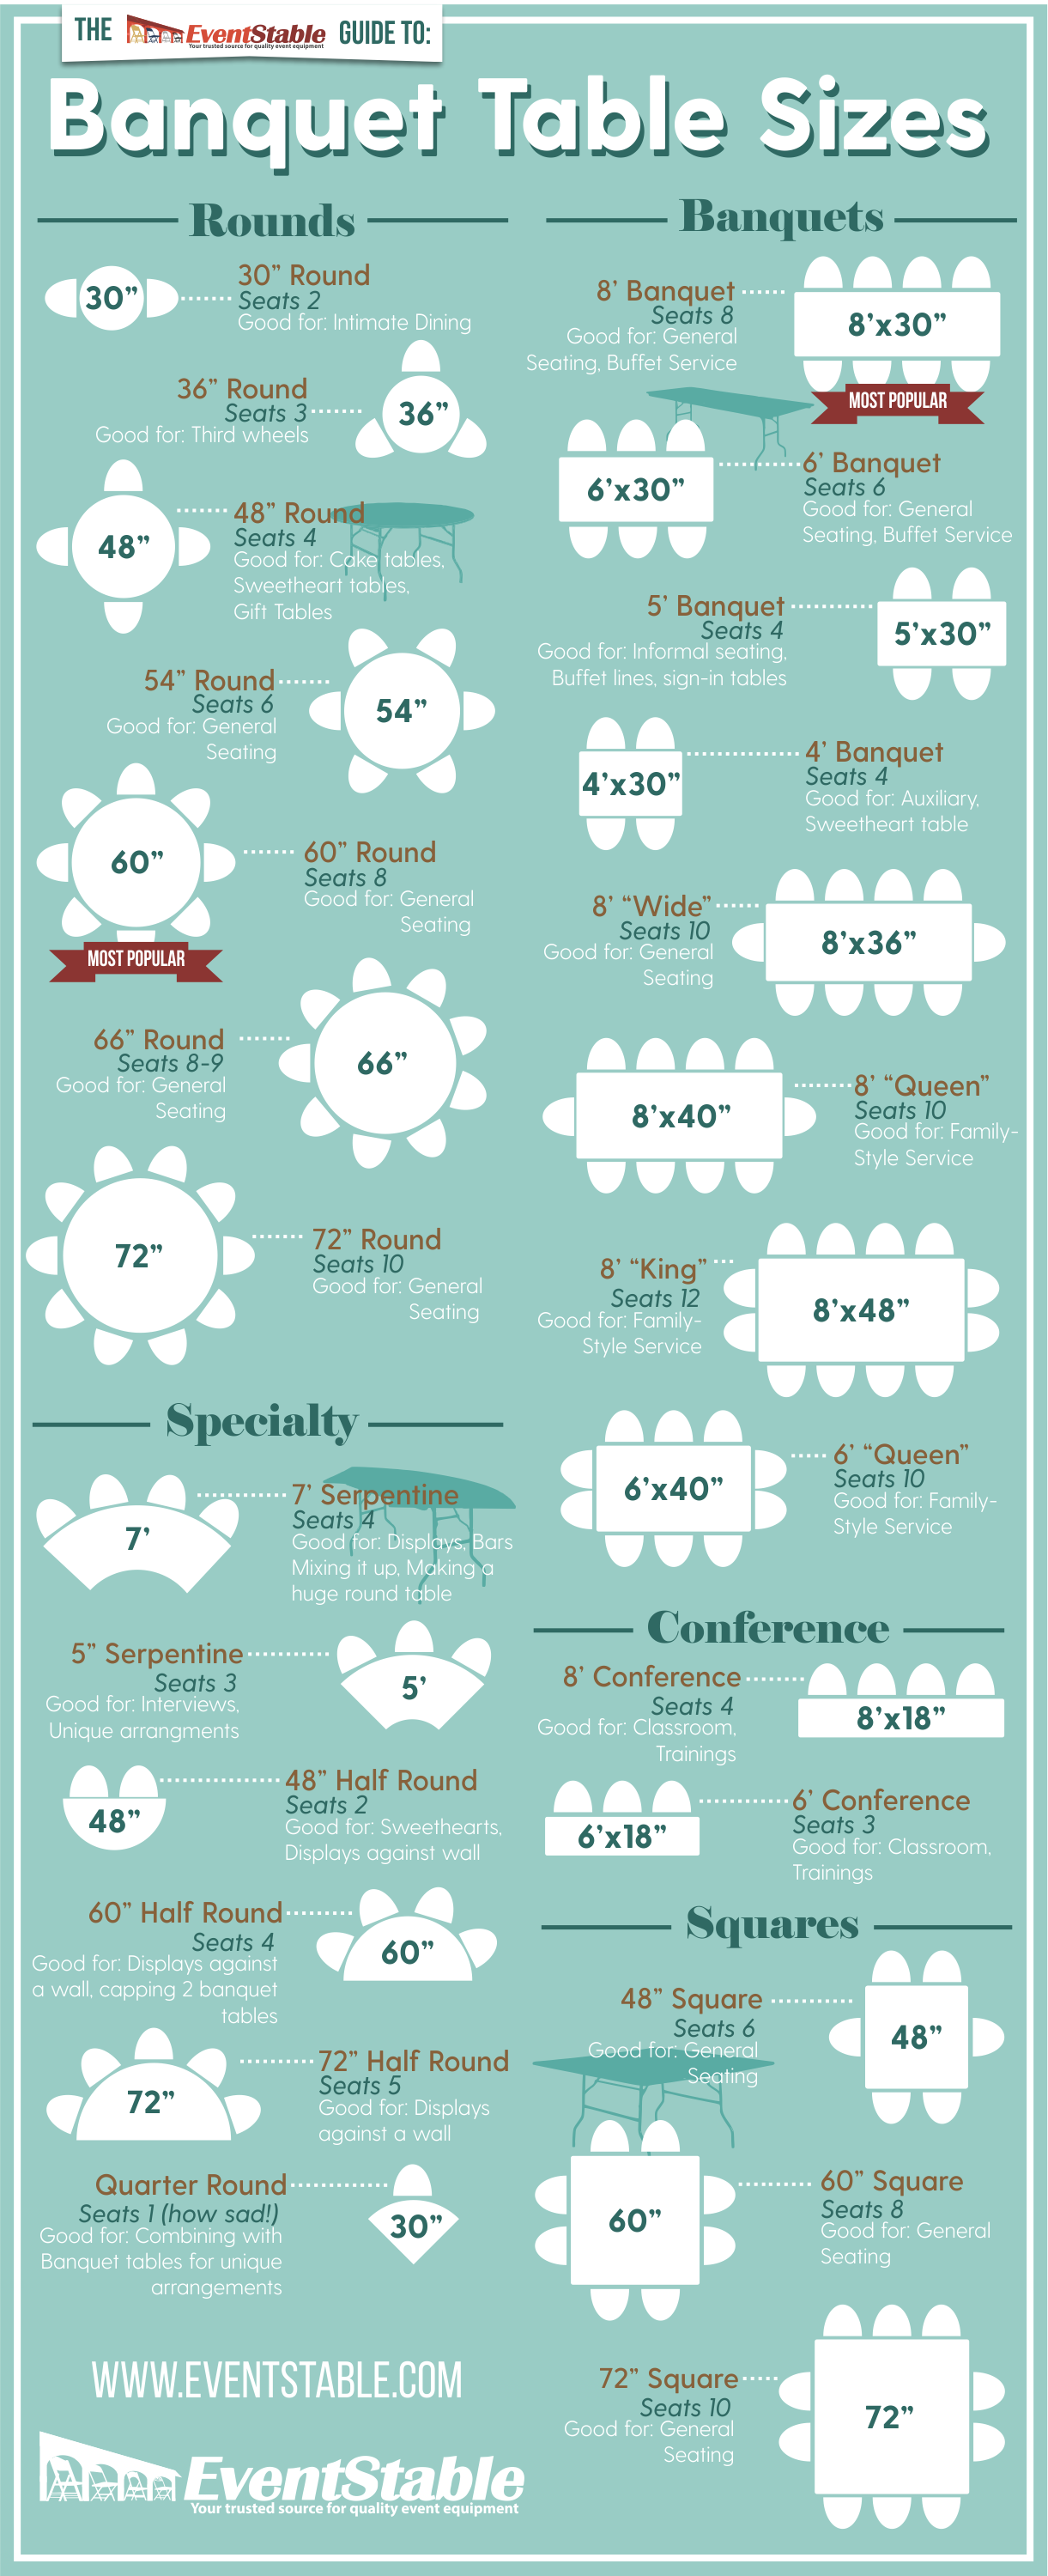 The EventStable Guide To Banquet Table Sizes EventStablecom - Banquet table measurements